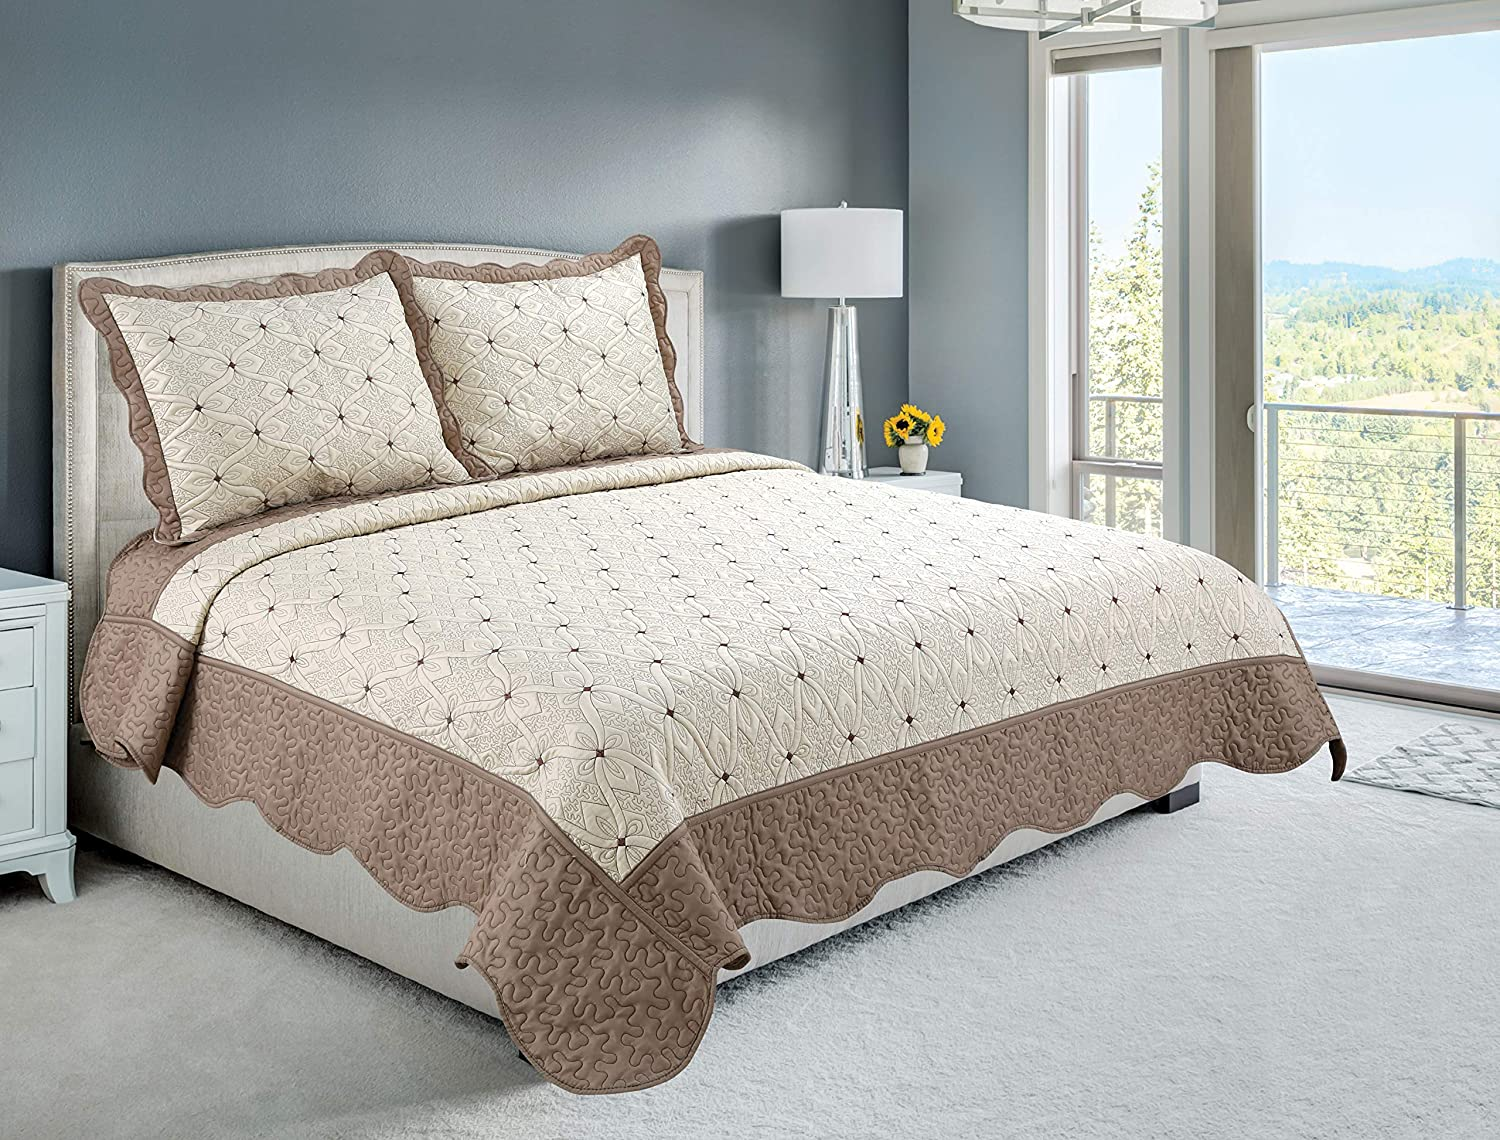 Marina Decoration Embroidered Coverlet Bedspread Ultra Soft Solid 2 Piece Summer Quilt Set with 1 Quilted Sham, Taupe